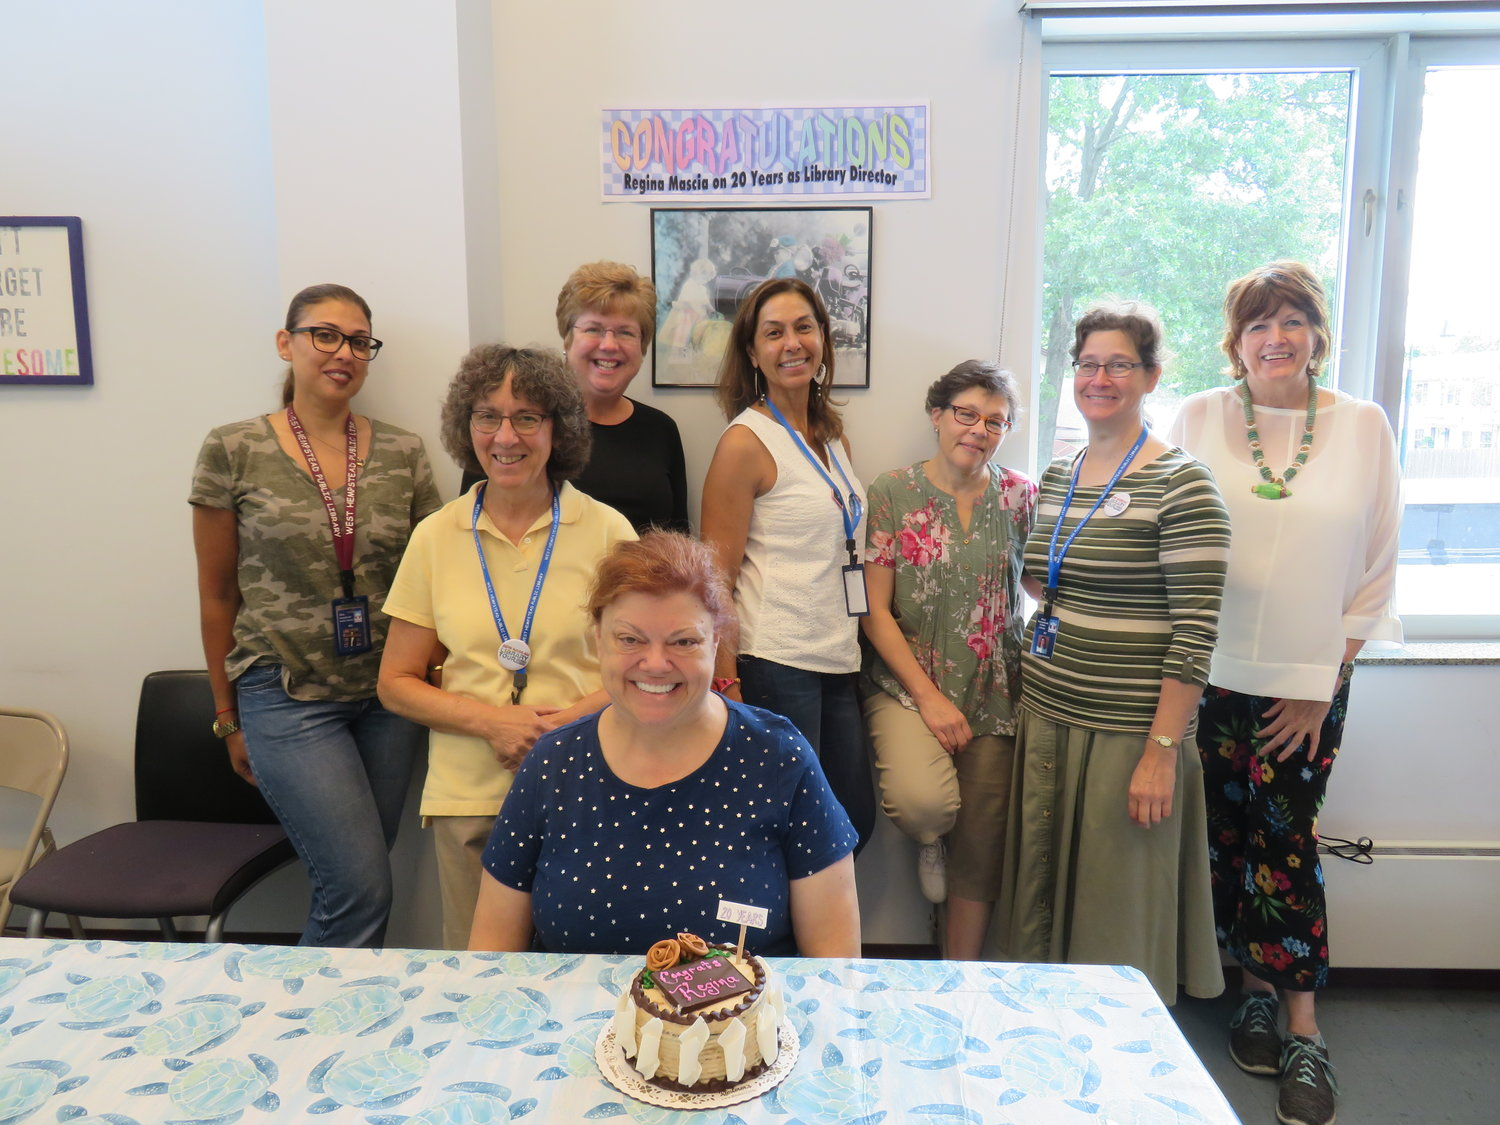 West Hempstead Library Director Regina Mascia celebrated her 20th anniversary in her position with staff members on Aug. 2.